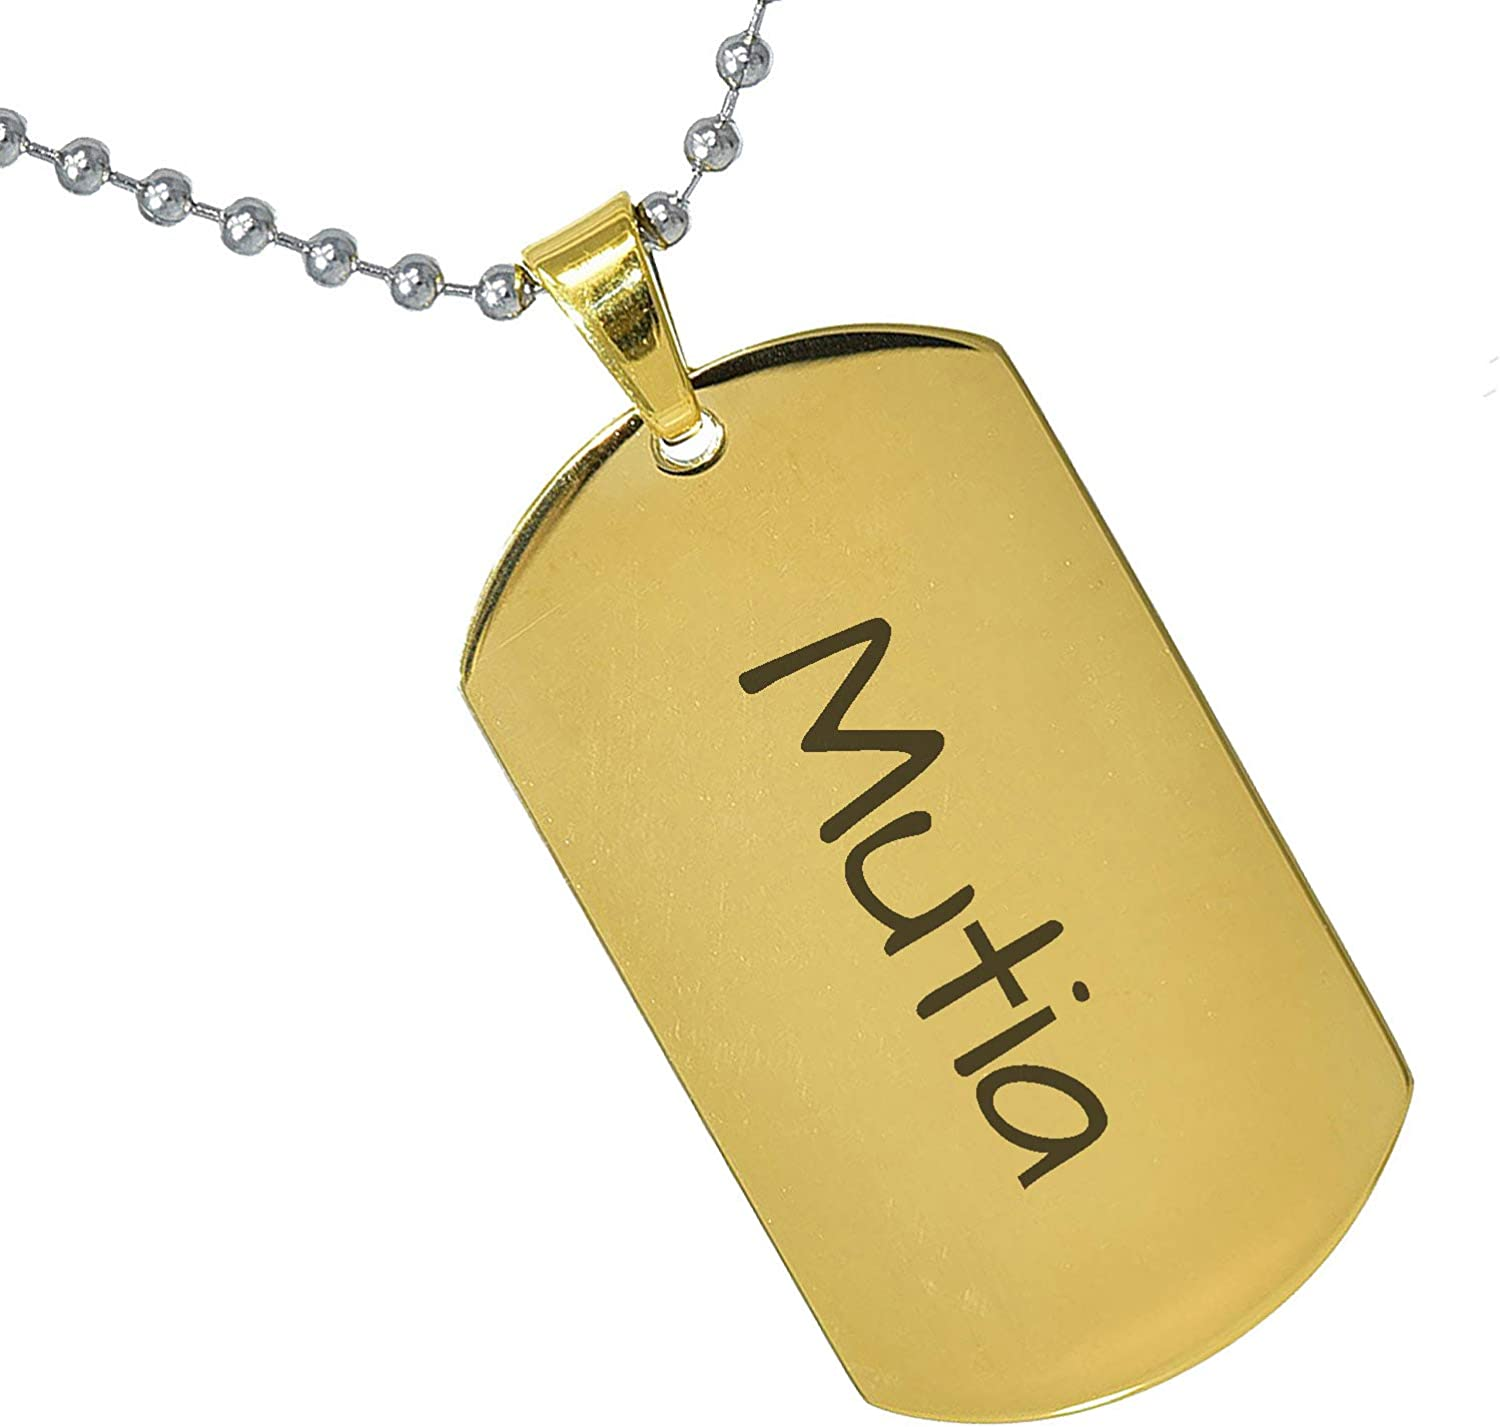 Stainless Steel Silver Gold Black Rose Gold Color Baby Name Mutia Engraved Personalized Gifts For Son Daughter Boyfriend Girlfriend Initial Customizable Pendant Necklace Dog Tags 24 Ball Chain